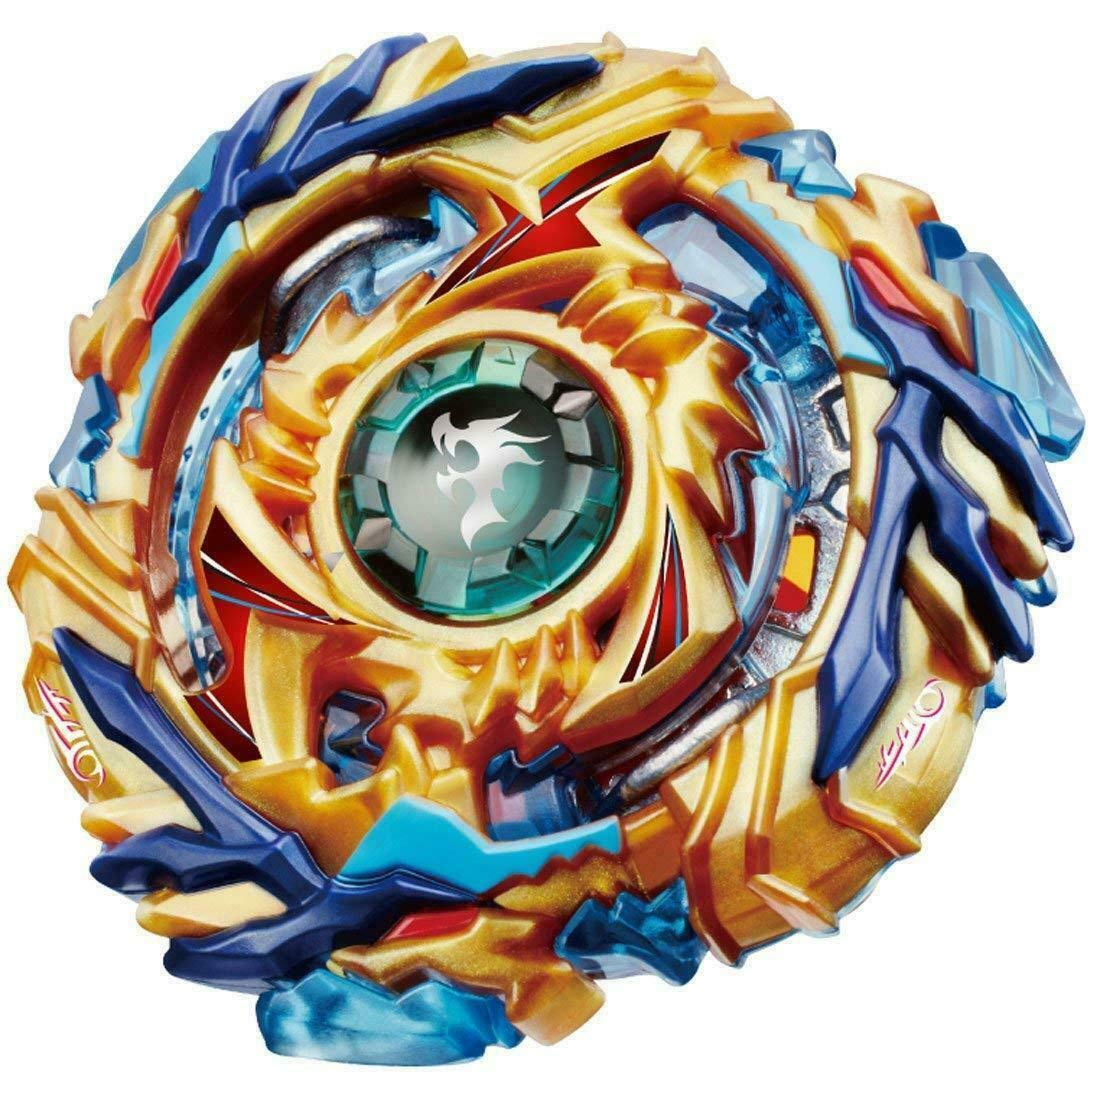 ROKK NOW Bey Battle Burst God Blades Gyro Evolution Combination 4D Series with Stadium Battle Arena, Launcher Stater Grip, Includes 4 Battling Fusion Beyblades by ROKK NOW